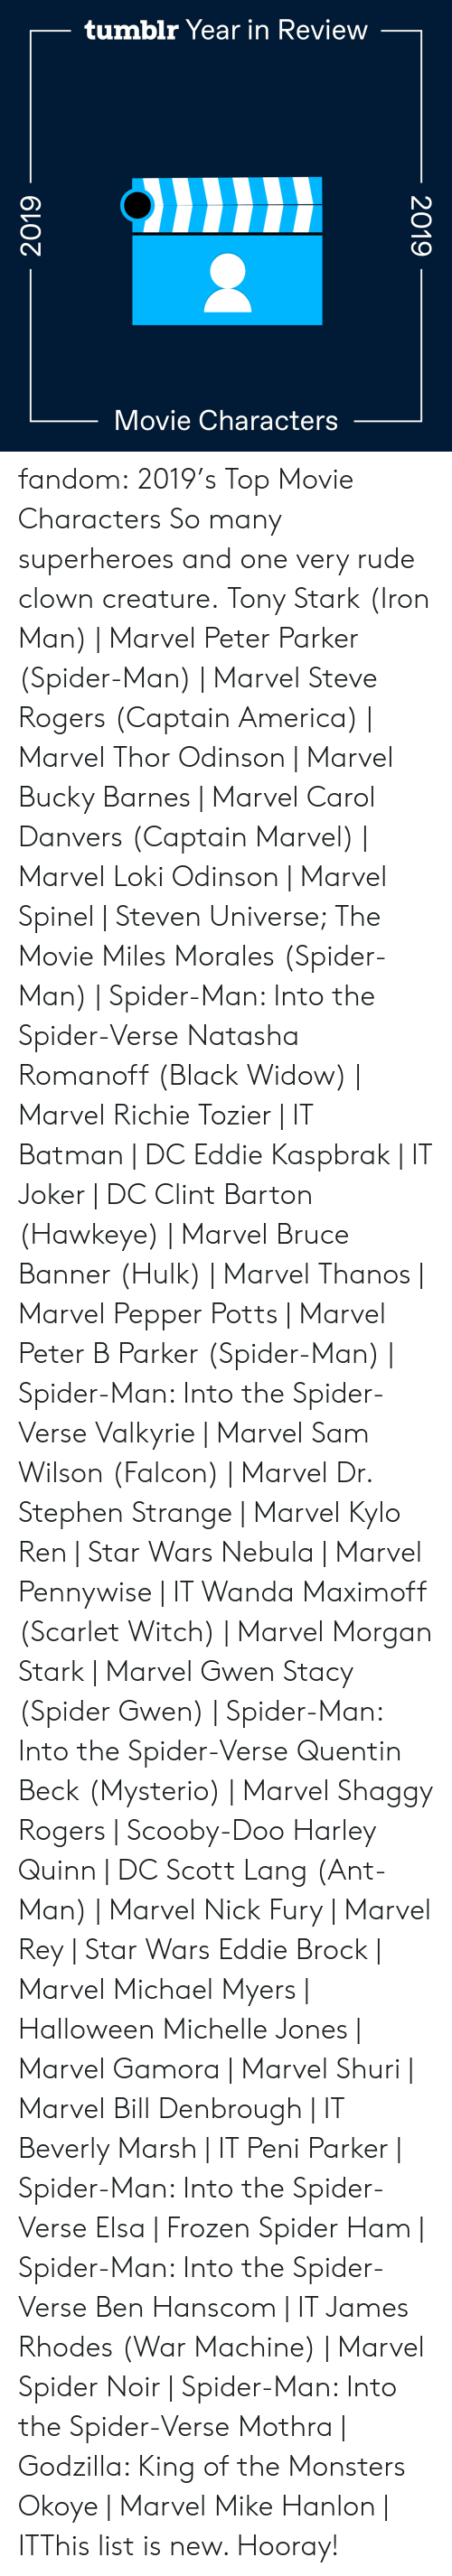 Steven Universe: tumblr Year in Review  Movie Characters  2019  2019 fandom:  2019's Top Movie Characters  So many superheroes and one very rude clown creature.  Tony Stark (Iron Man) | Marvel  Peter Parker (Spider-Man) | Marvel  Steve Rogers (Captain America) | Marvel  Thor Odinson | Marvel  Bucky Barnes | Marvel  Carol Danvers (Captain Marvel) | Marvel  Loki Odinson | Marvel  Spinel | Steven Universe; The Movie  Miles Morales (Spider-Man) | Spider-Man: Into the Spider-Verse  Natasha Romanoff (Black Widow) | Marvel  Richie Tozier | IT  Batman | DC  Eddie Kaspbrak | IT  Joker | DC  Clint Barton (Hawkeye) | Marvel  Bruce Banner (Hulk) | Marvel  Thanos | Marvel  Pepper Potts | Marvel  Peter B Parker (Spider-Man) | Spider-Man: Into the Spider-Verse  Valkyrie | Marvel  Sam Wilson (Falcon) | Marvel  Dr. Stephen Strange | Marvel  Kylo Ren | Star Wars  Nebula | Marvel  Pennywise | IT  Wanda Maximoff (Scarlet Witch) | Marvel  Morgan Stark | Marvel  Gwen Stacy (Spider Gwen) | Spider-Man: Into the Spider-Verse  Quentin Beck (Mysterio) | Marvel  Shaggy Rogers | Scooby-Doo  Harley Quinn | DC  Scott Lang (Ant-Man) | Marvel  Nick Fury | Marvel  Rey | Star Wars  Eddie Brock | Marvel  Michael Myers | Halloween  Michelle Jones | Marvel  Gamora | Marvel  Shuri | Marvel  Bill Denbrough | IT  Beverly Marsh | IT  Peni Parker | Spider-Man: Into the Spider-Verse  Elsa | Frozen  Spider Ham | Spider-Man: Into the Spider-Verse  Ben Hanscom | IT  James Rhodes (War Machine) | Marvel  Spider Noir | Spider-Man: Into the Spider-Verse  Mothra | Godzilla: King of the Monsters  Okoye | Marvel Mike Hanlon | ITThis list is new. Hooray!